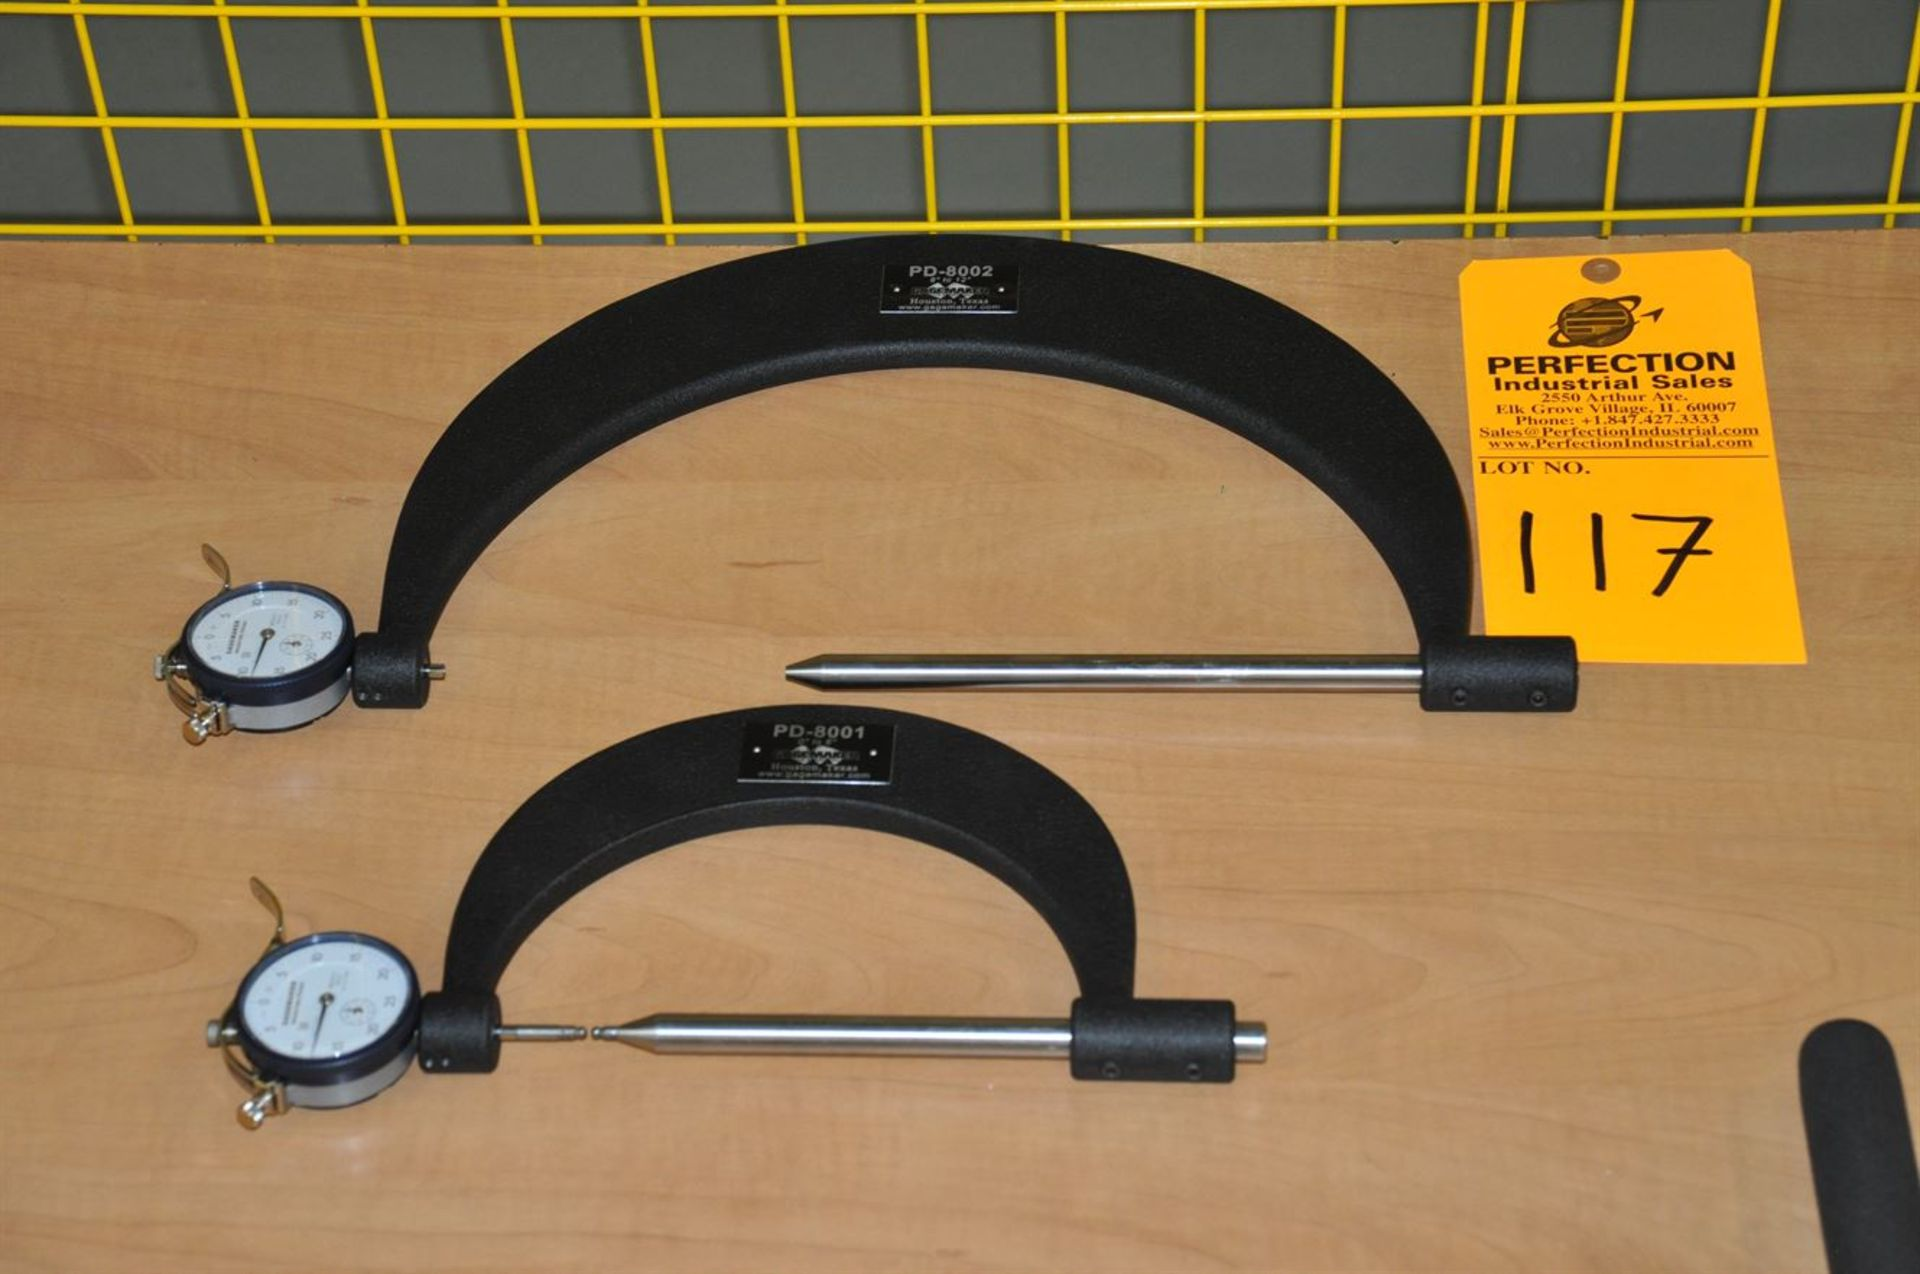 GageMaker Pitch Diameter Gage 0.0005 res, (1) of PD-8001, (1) of PD-8002